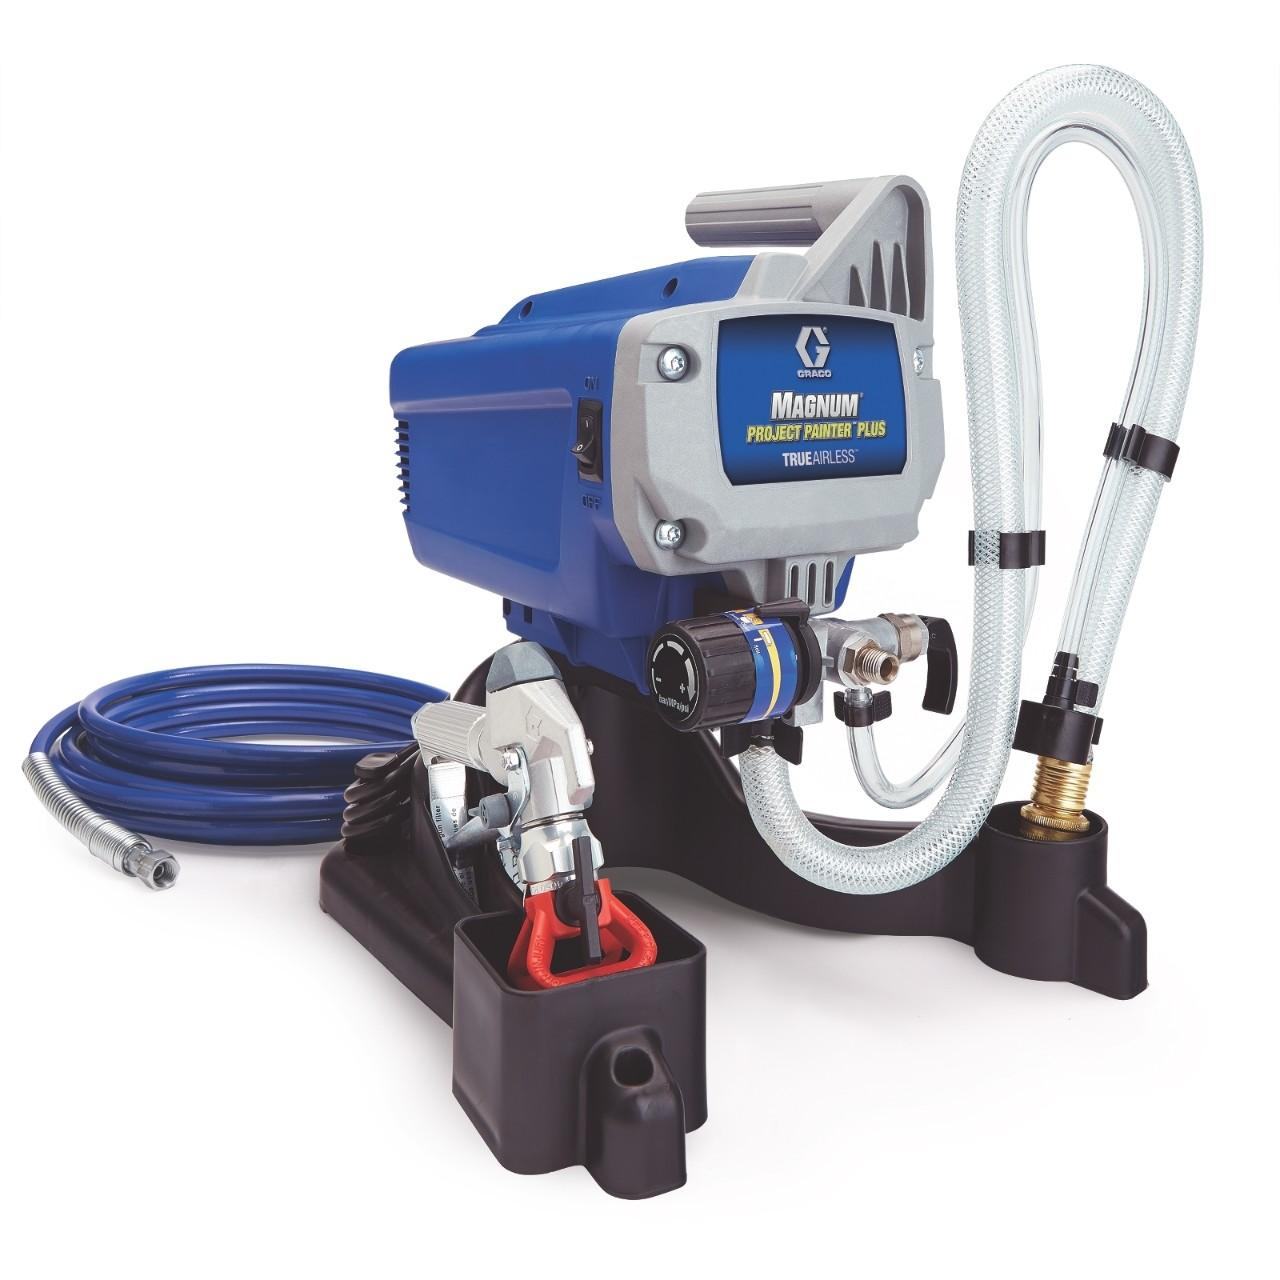 Graco Magnum 257025 Project Painter and Paint Sprayer